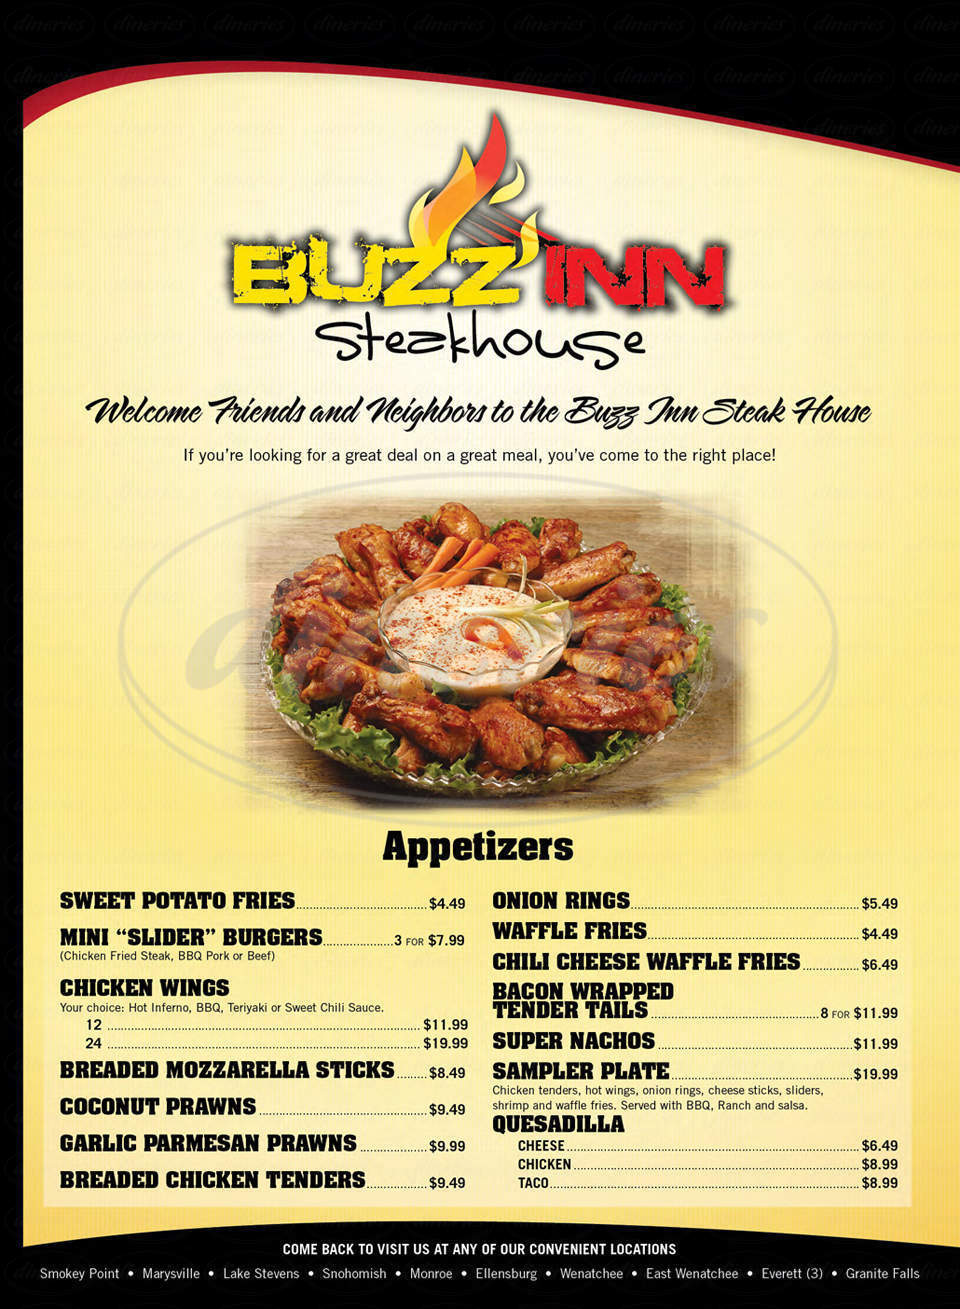 menu for Buzz Inn Steakhouse & Lounge